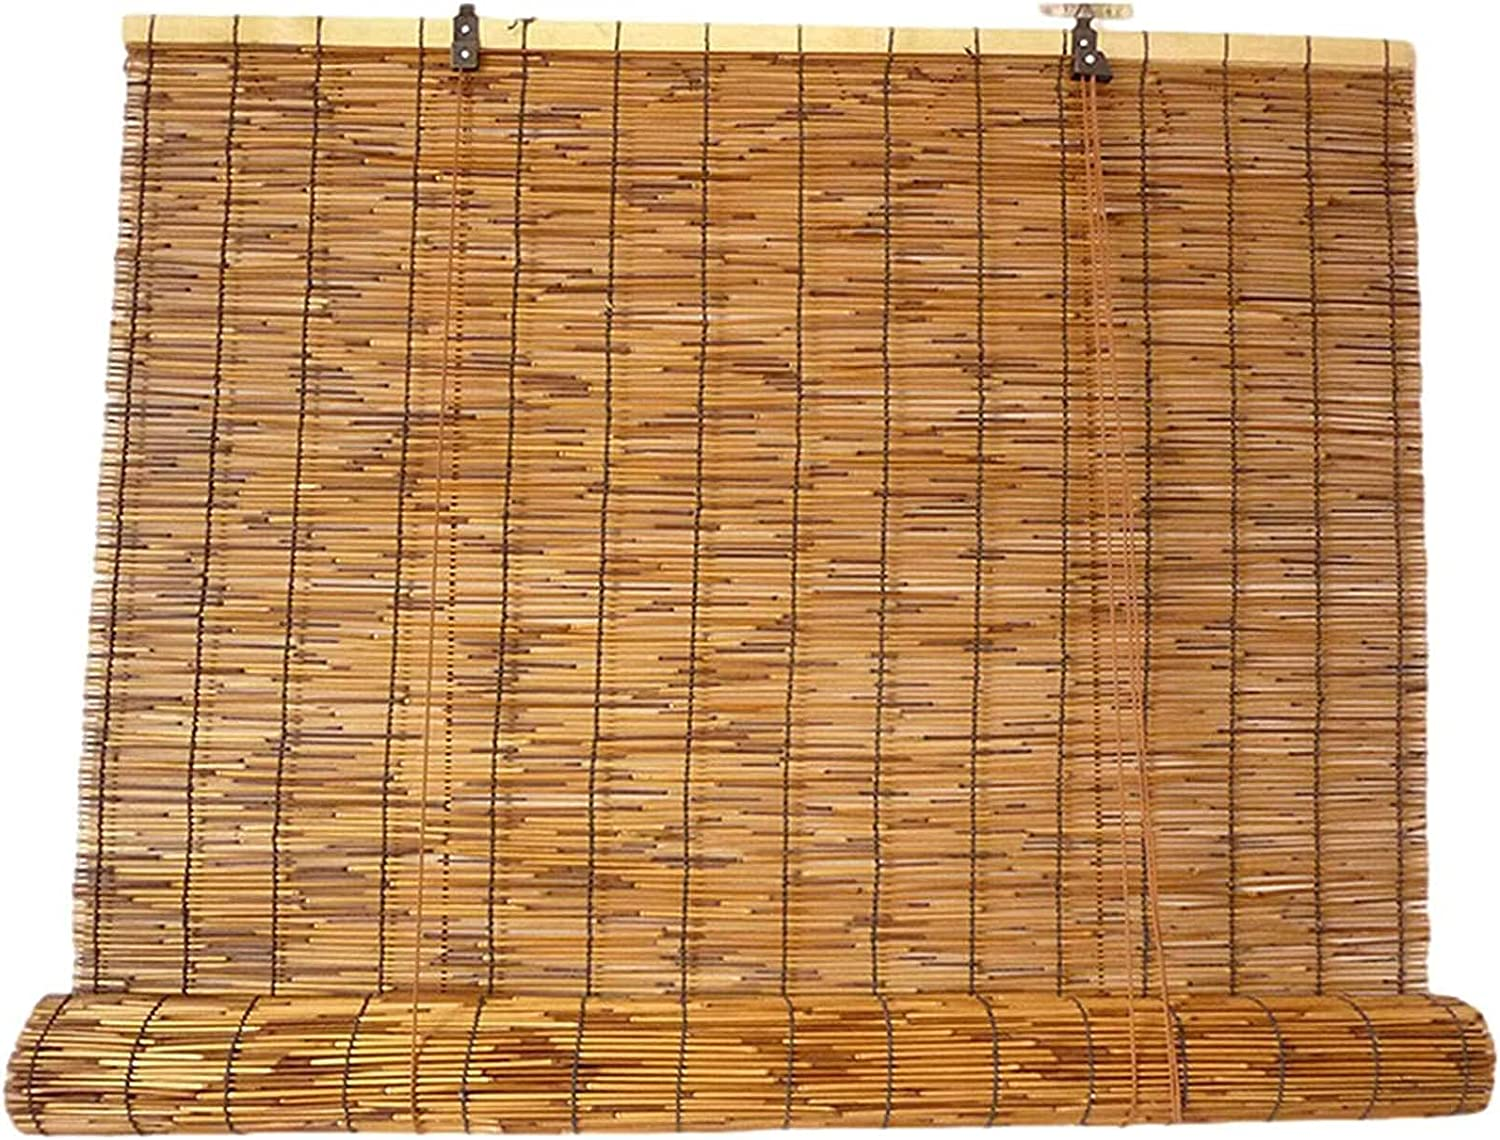 Ranking TOP7 Natural Bamboo Roller Easy-to-use Blinds 43x87 inch Shades Re Reed Up Roll